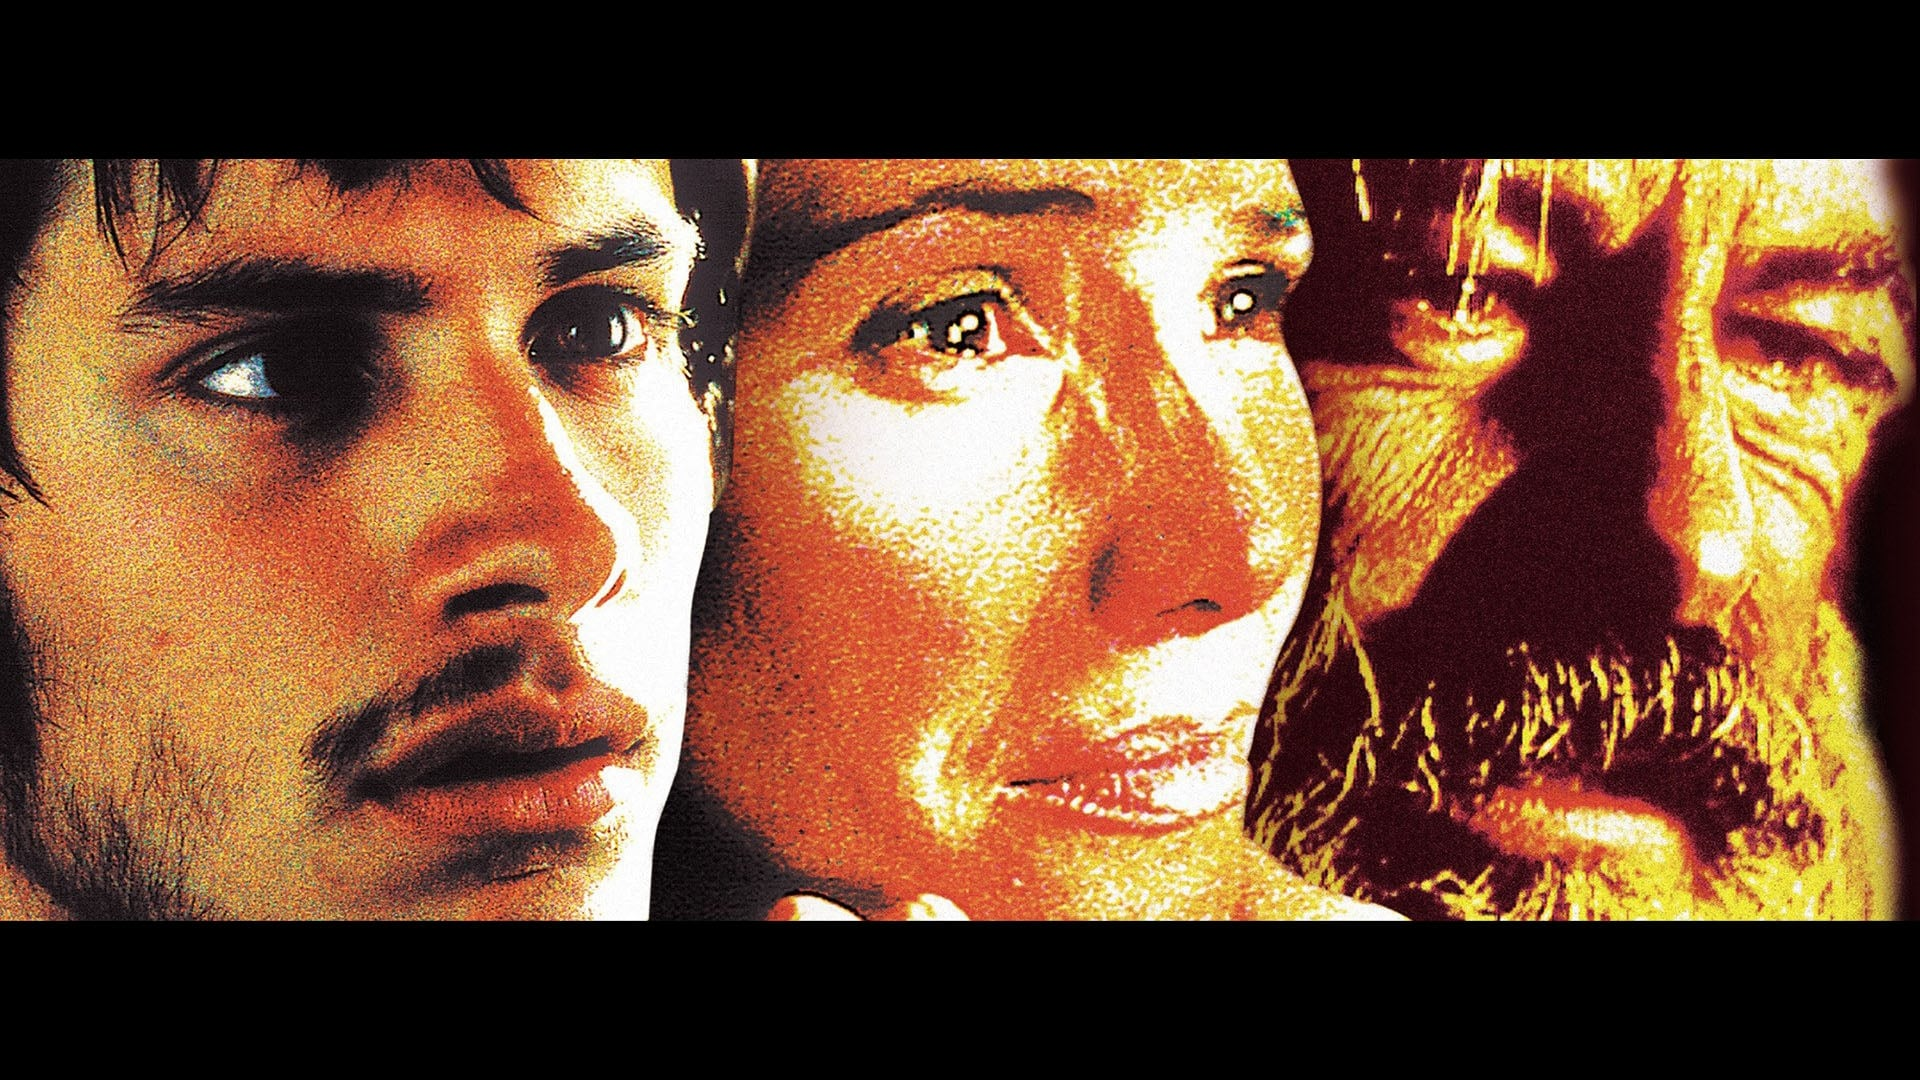 Amores Perros 2000 amores perros (2000) - backdrops — the movie database (tmdb)